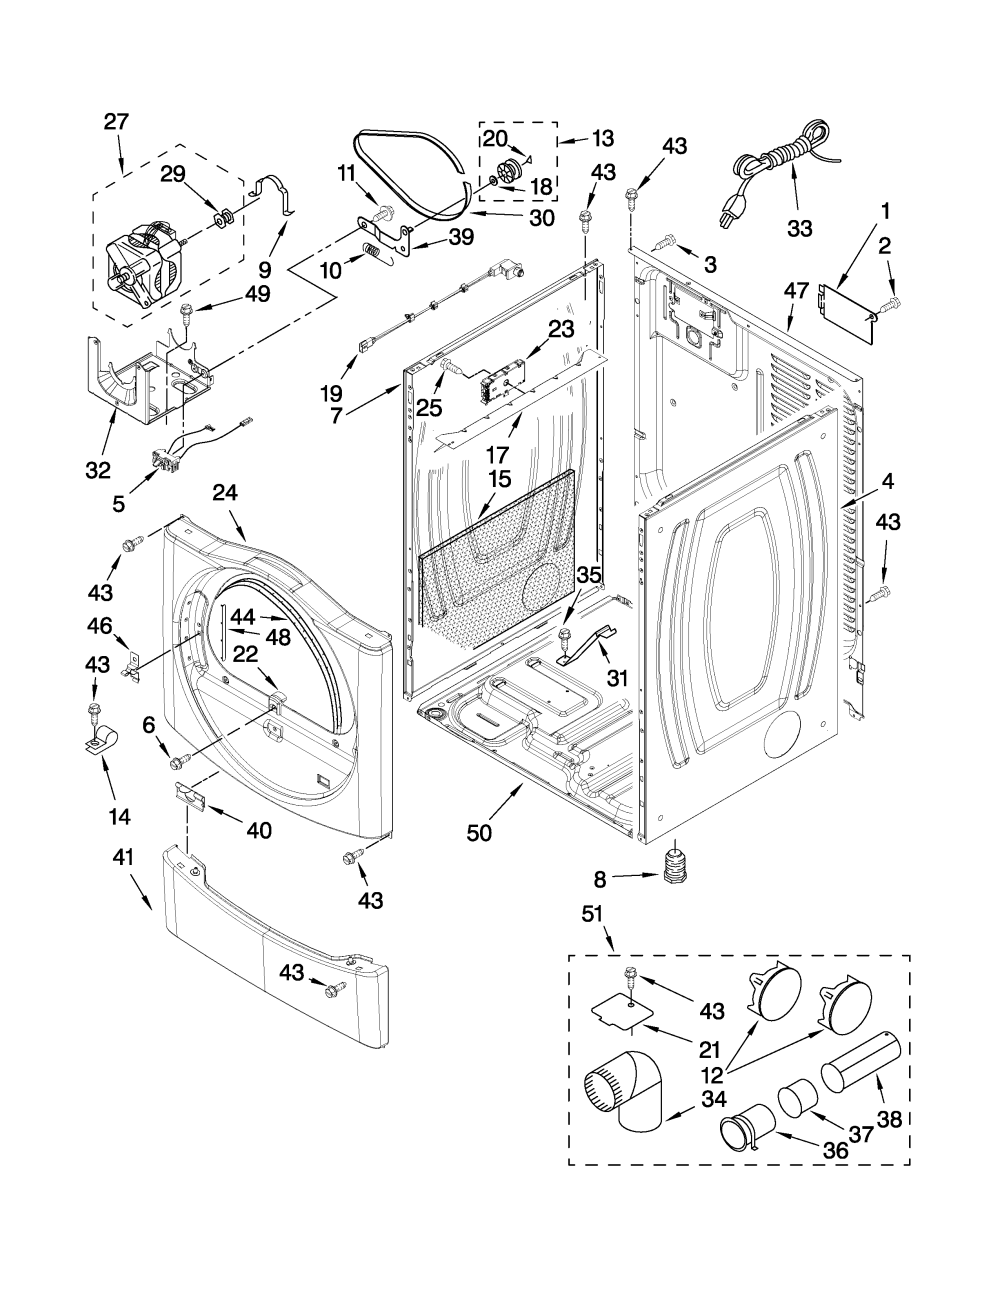 medium resolution of whirlpool gas dryer parts diagram together with whirlpool gas dryer